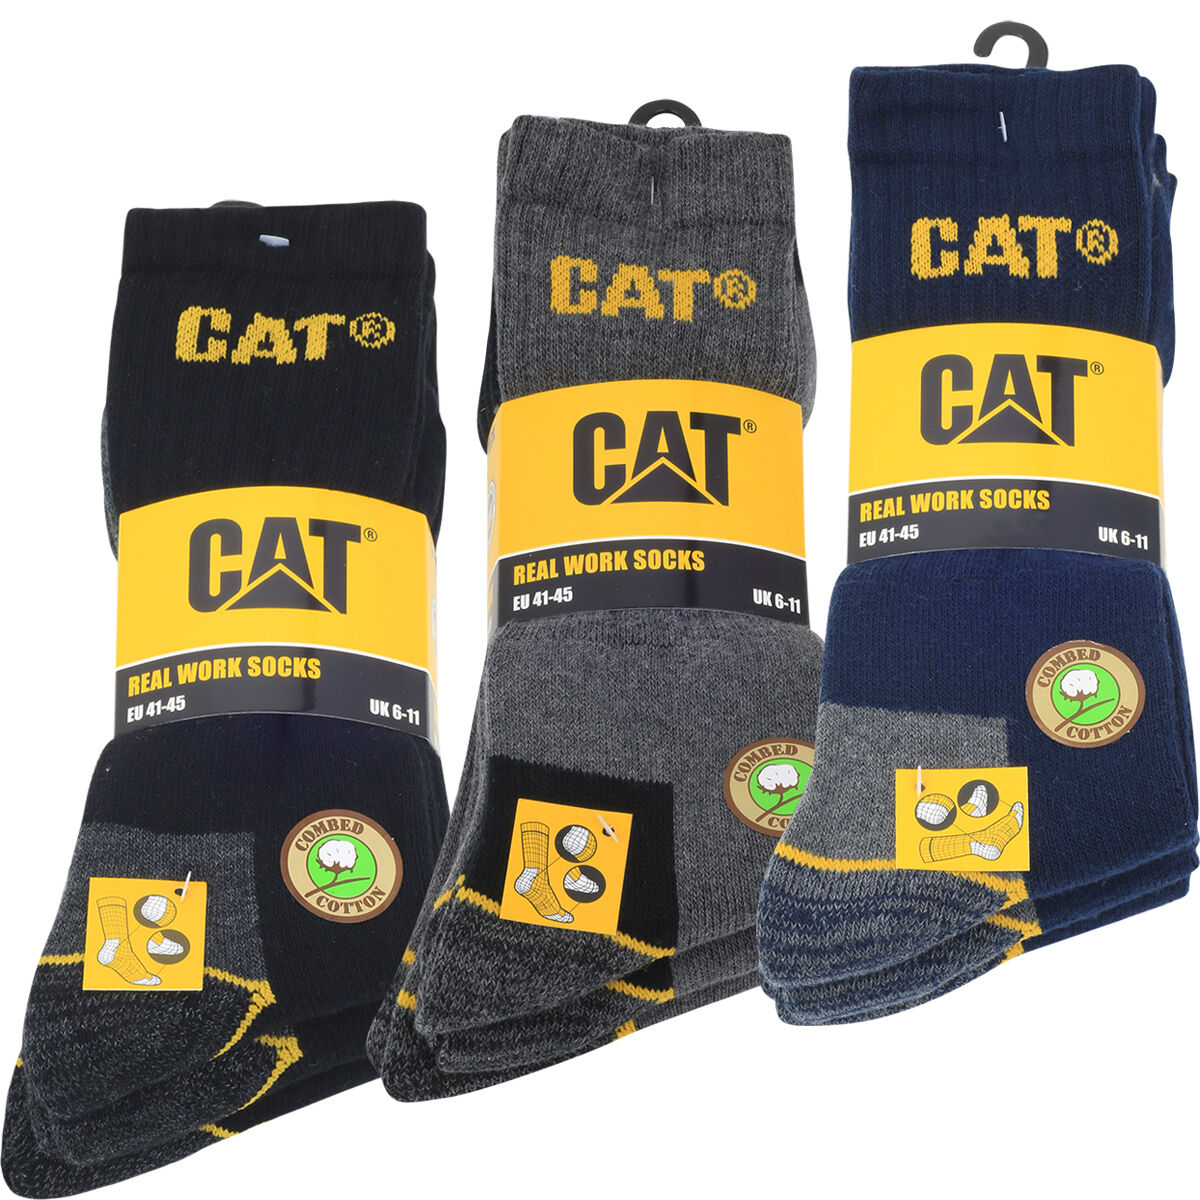 9er CAT SOCKEN CATERPILLAR ARBEITSSOCKEN REAL WORK SOCKS SCHWARZ NAVY GRAU 41-45